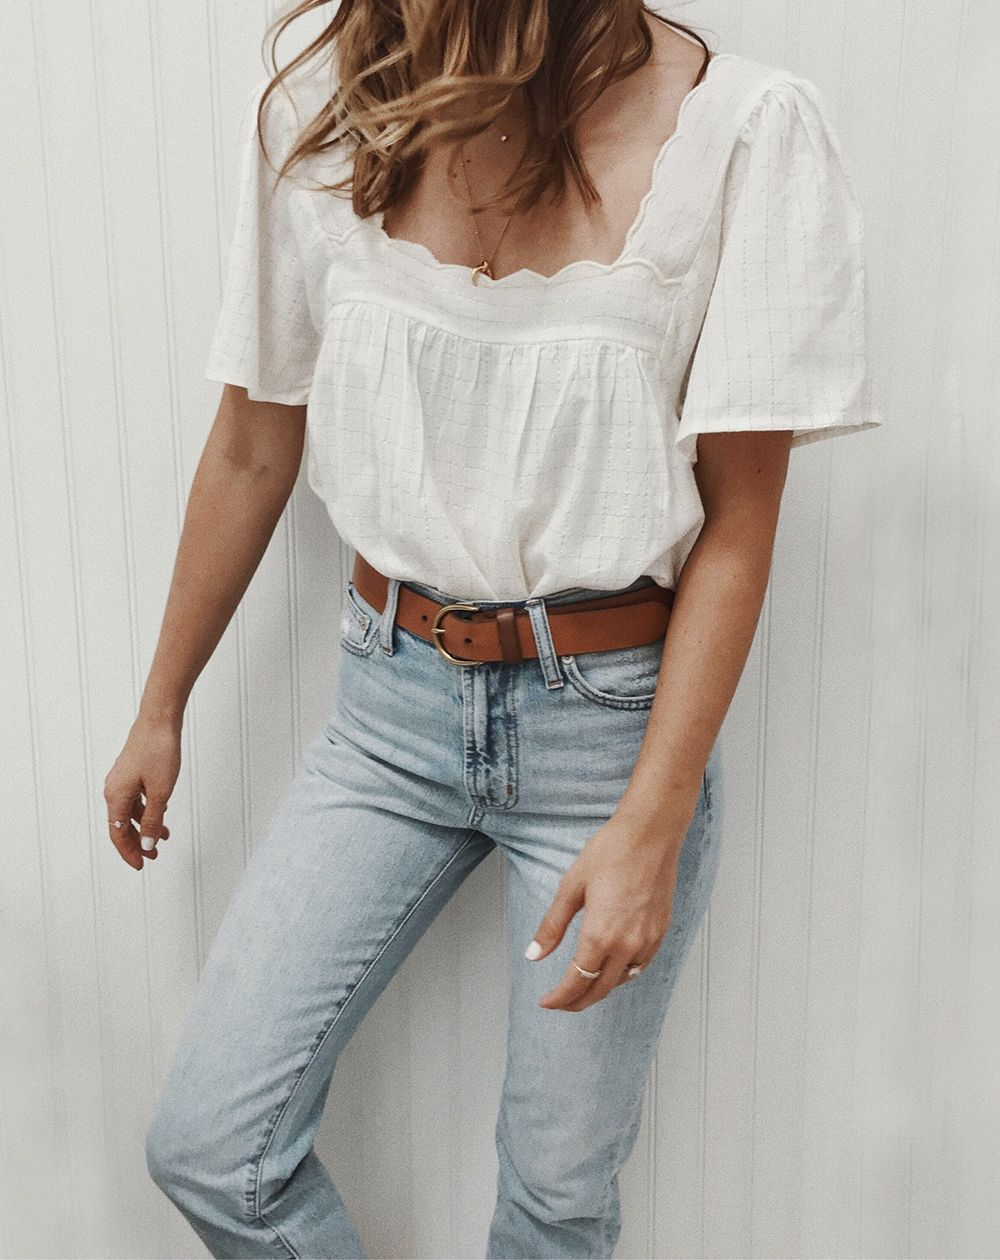 9f55fa406ecc livvyland-blog-olivia-watson -white-scalloped-top-tucked-in-high-rise-jeans-brown-belt-sezane-outfit -classic